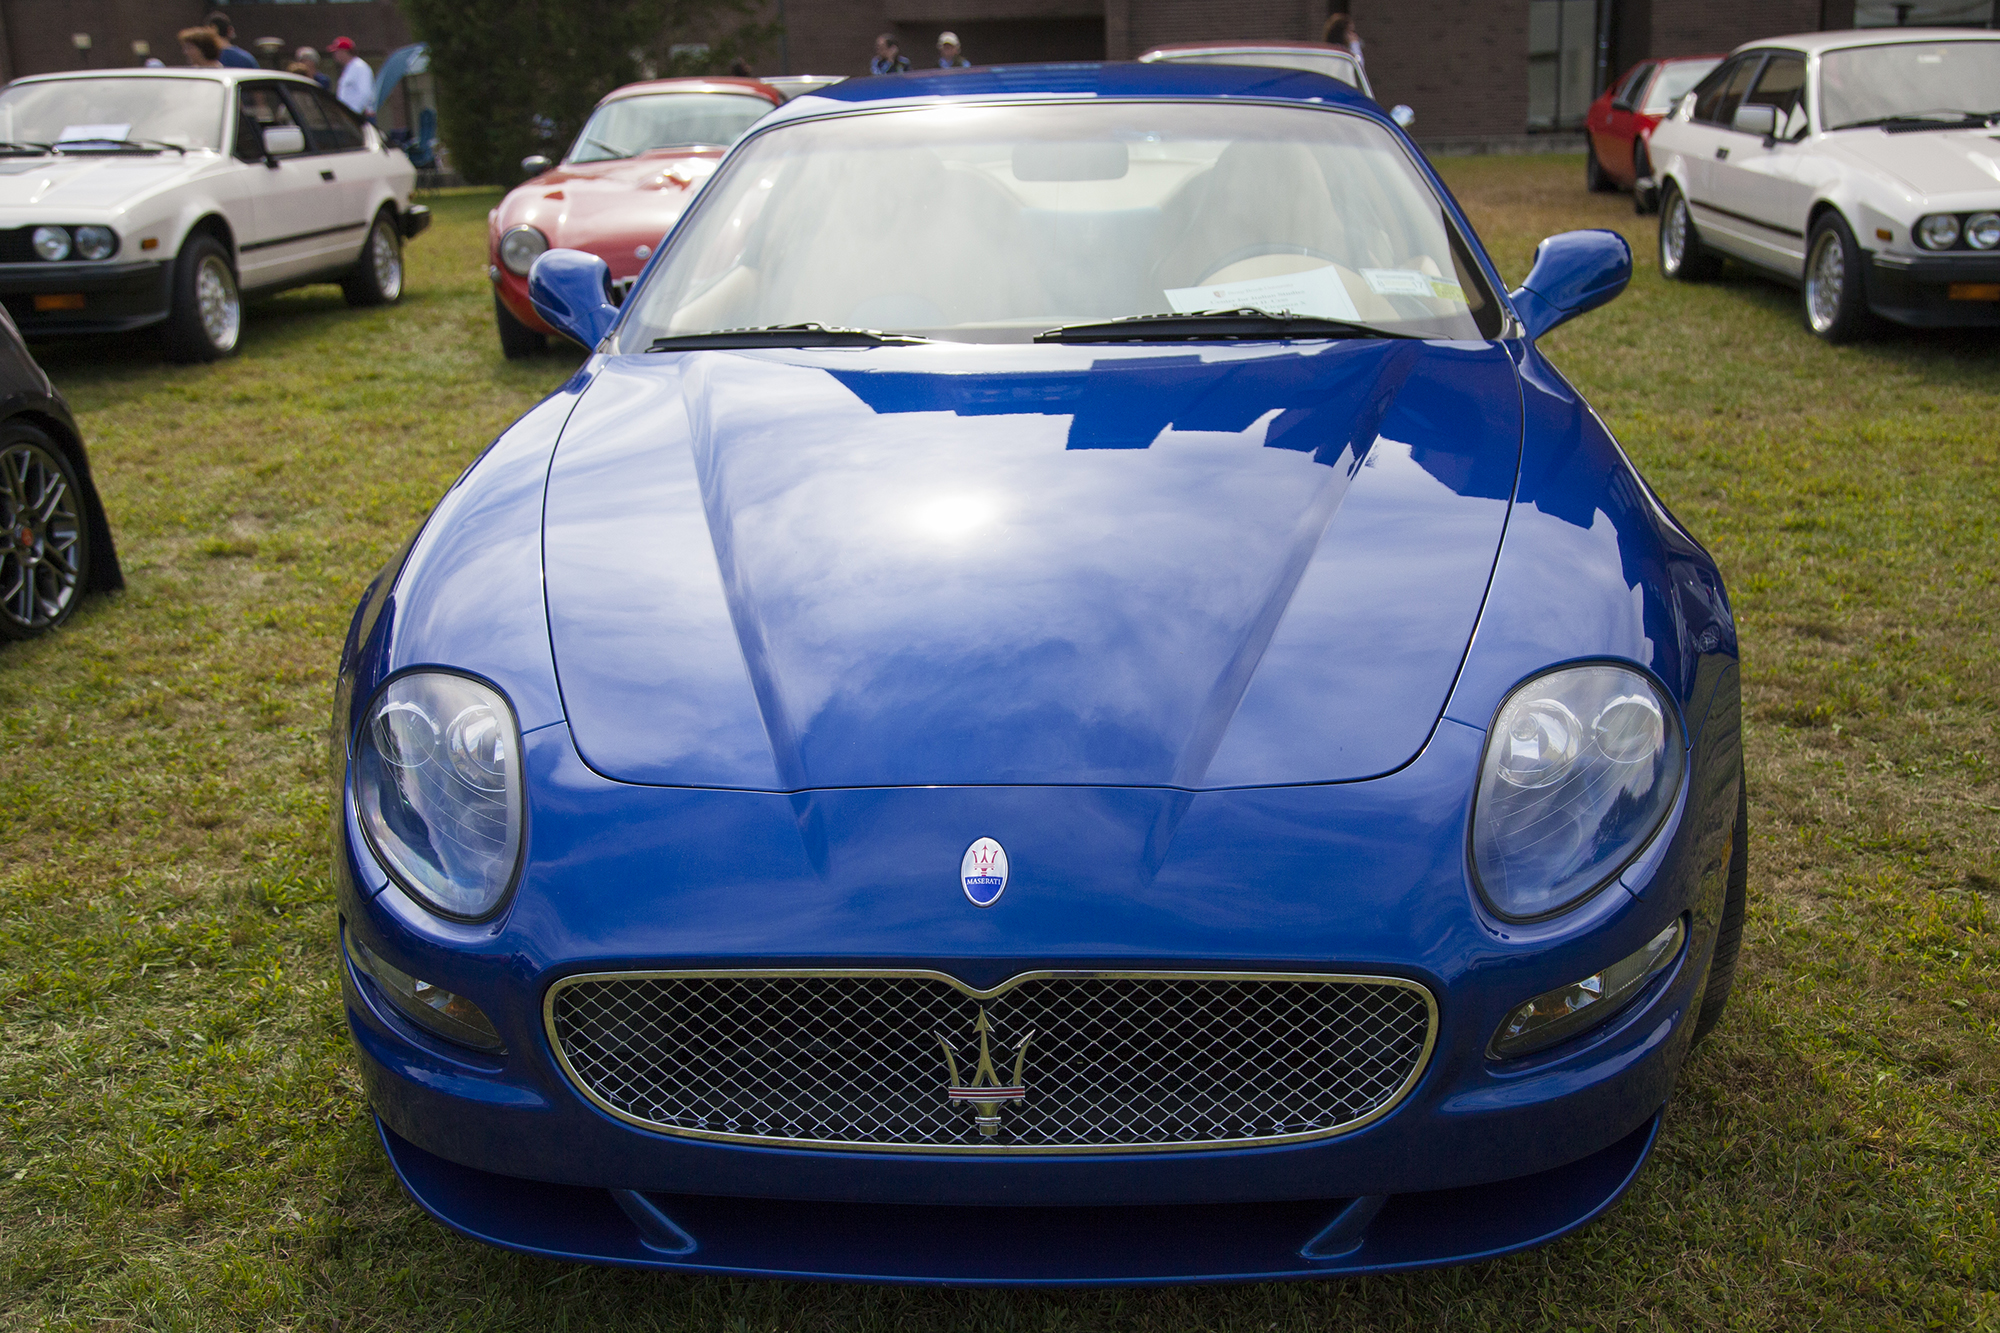 A 2005 Maserati GranSport at the Concorso d'Eleganza X. GISELLE MIRANDA/THE STATESMAN